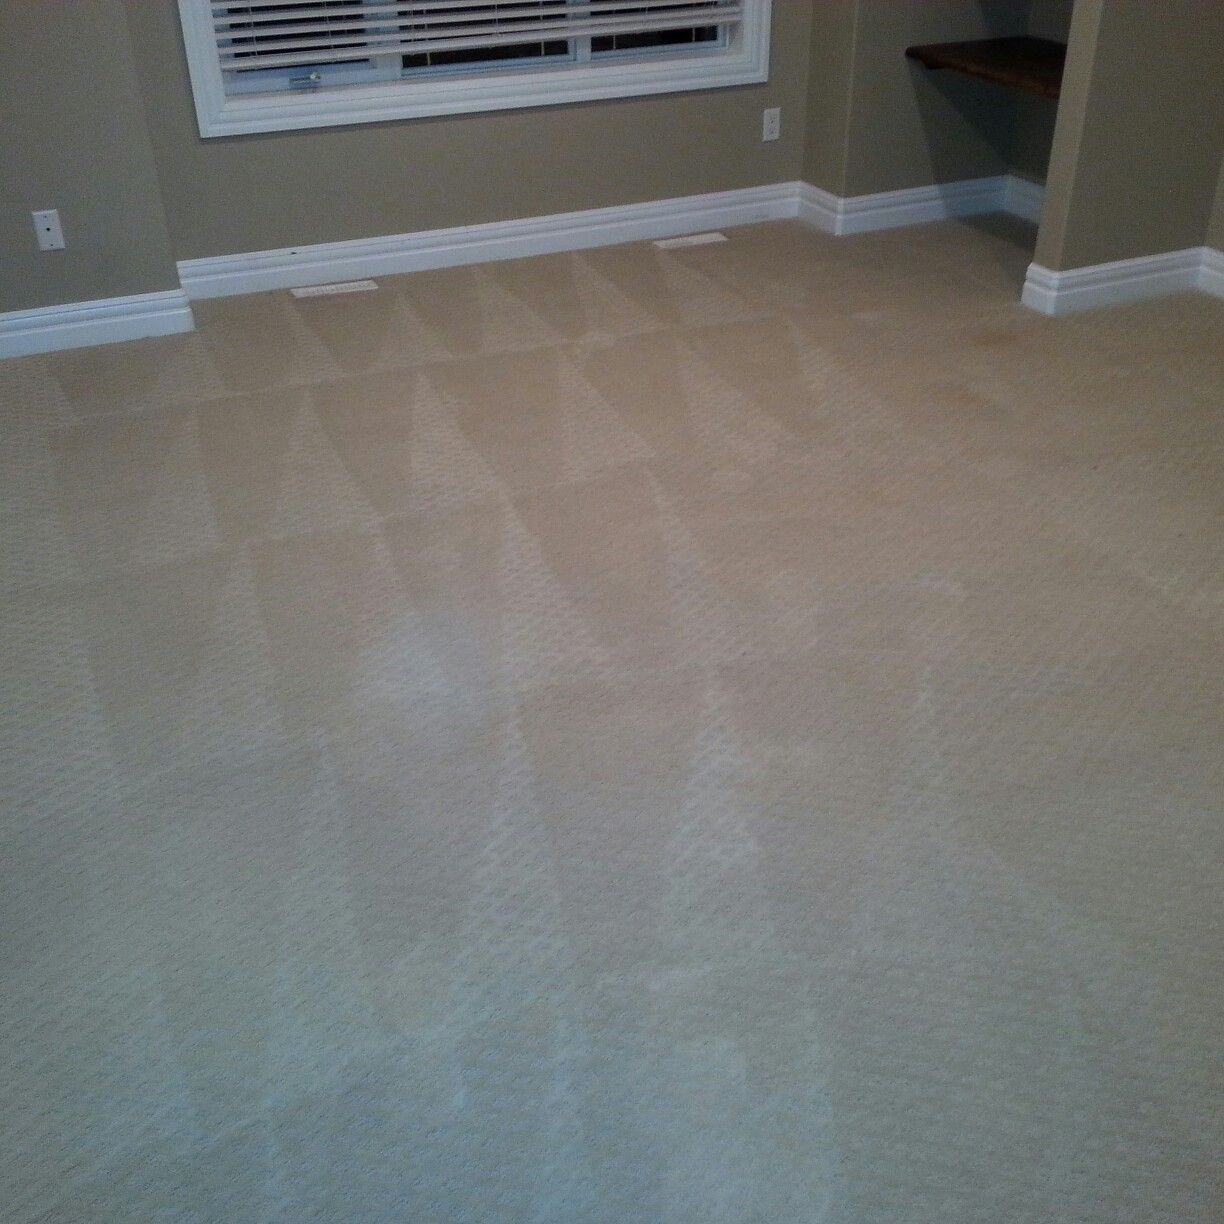 Carpet Cleaning Services How To Clean Carpet Carpet Cleaning Service Stony Plain